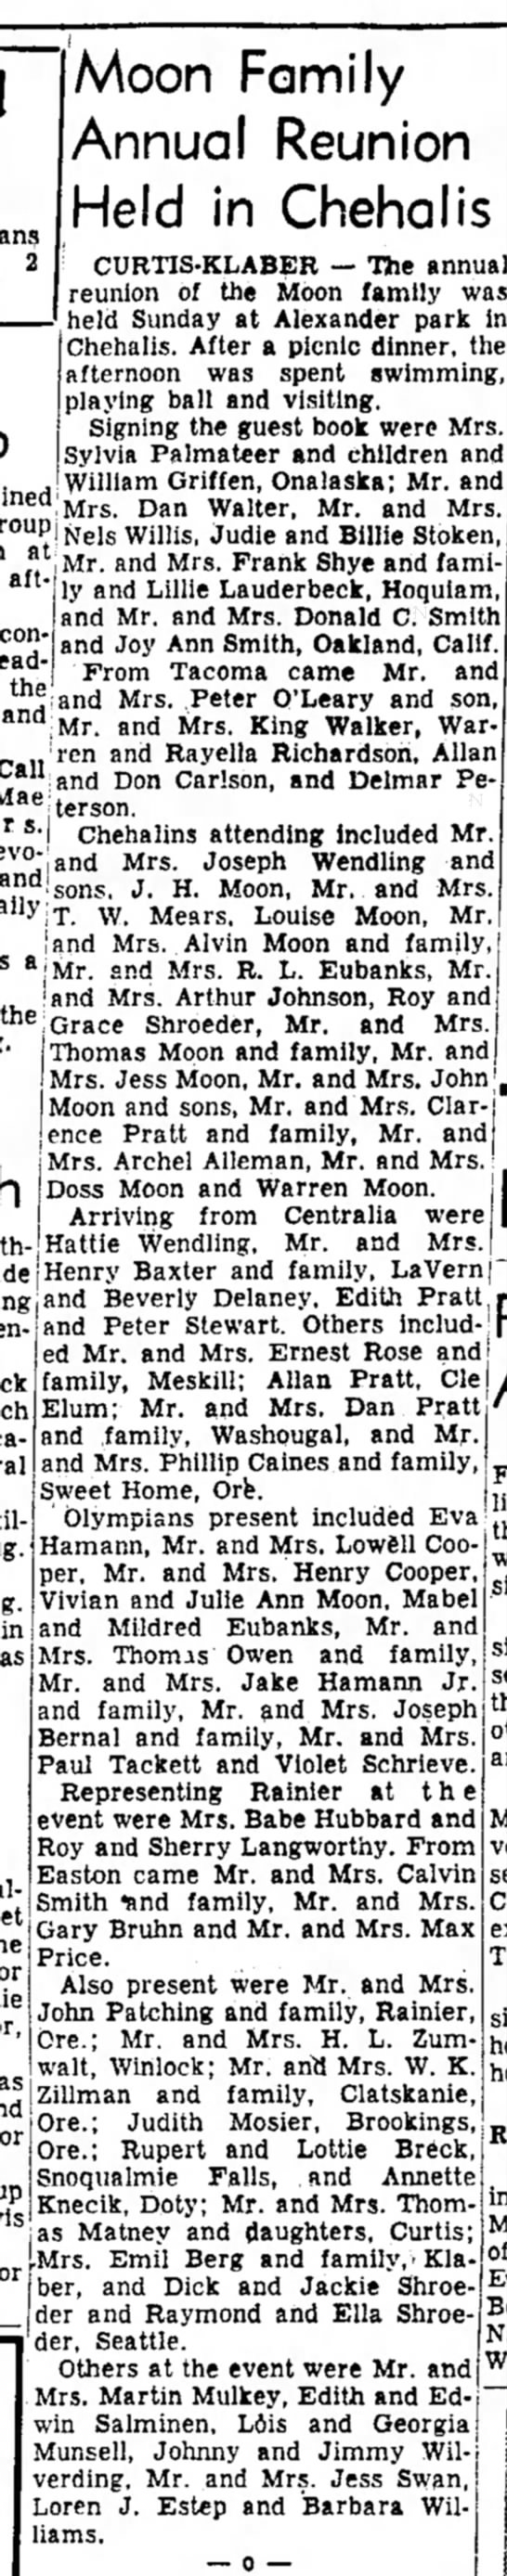 Willette, Louise Davis Moon: Moon Family Reunion